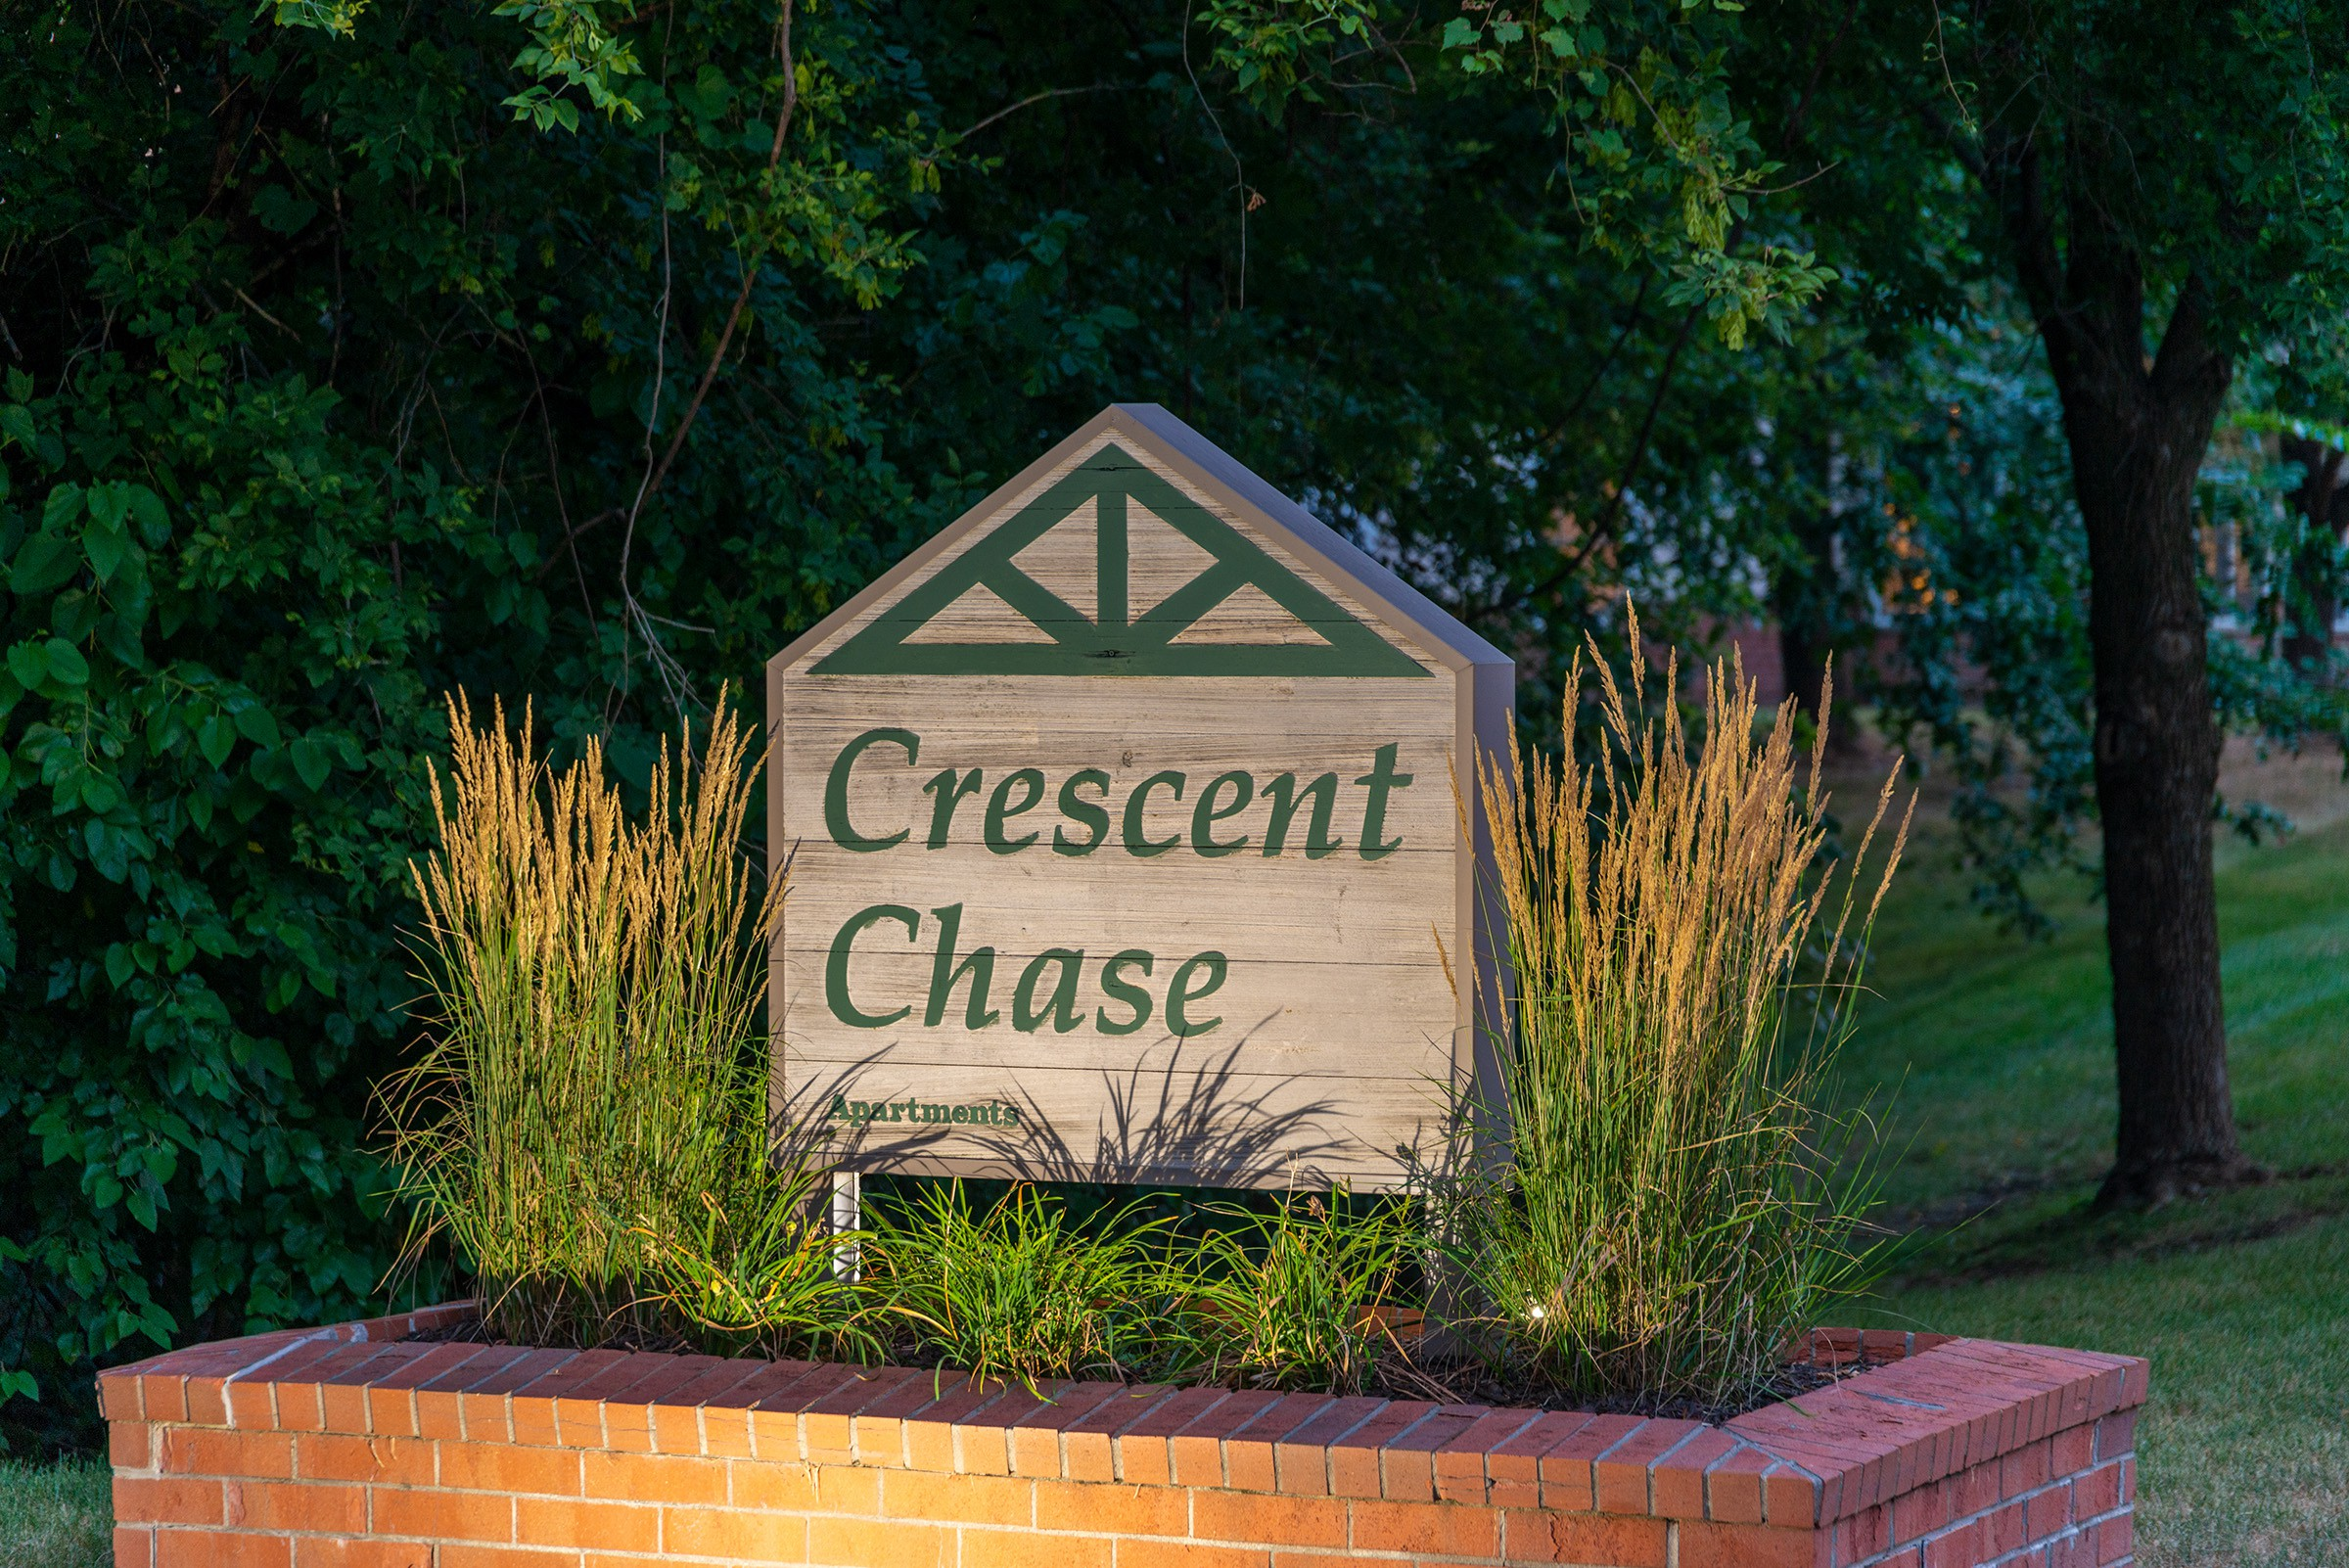 Crescent Chase